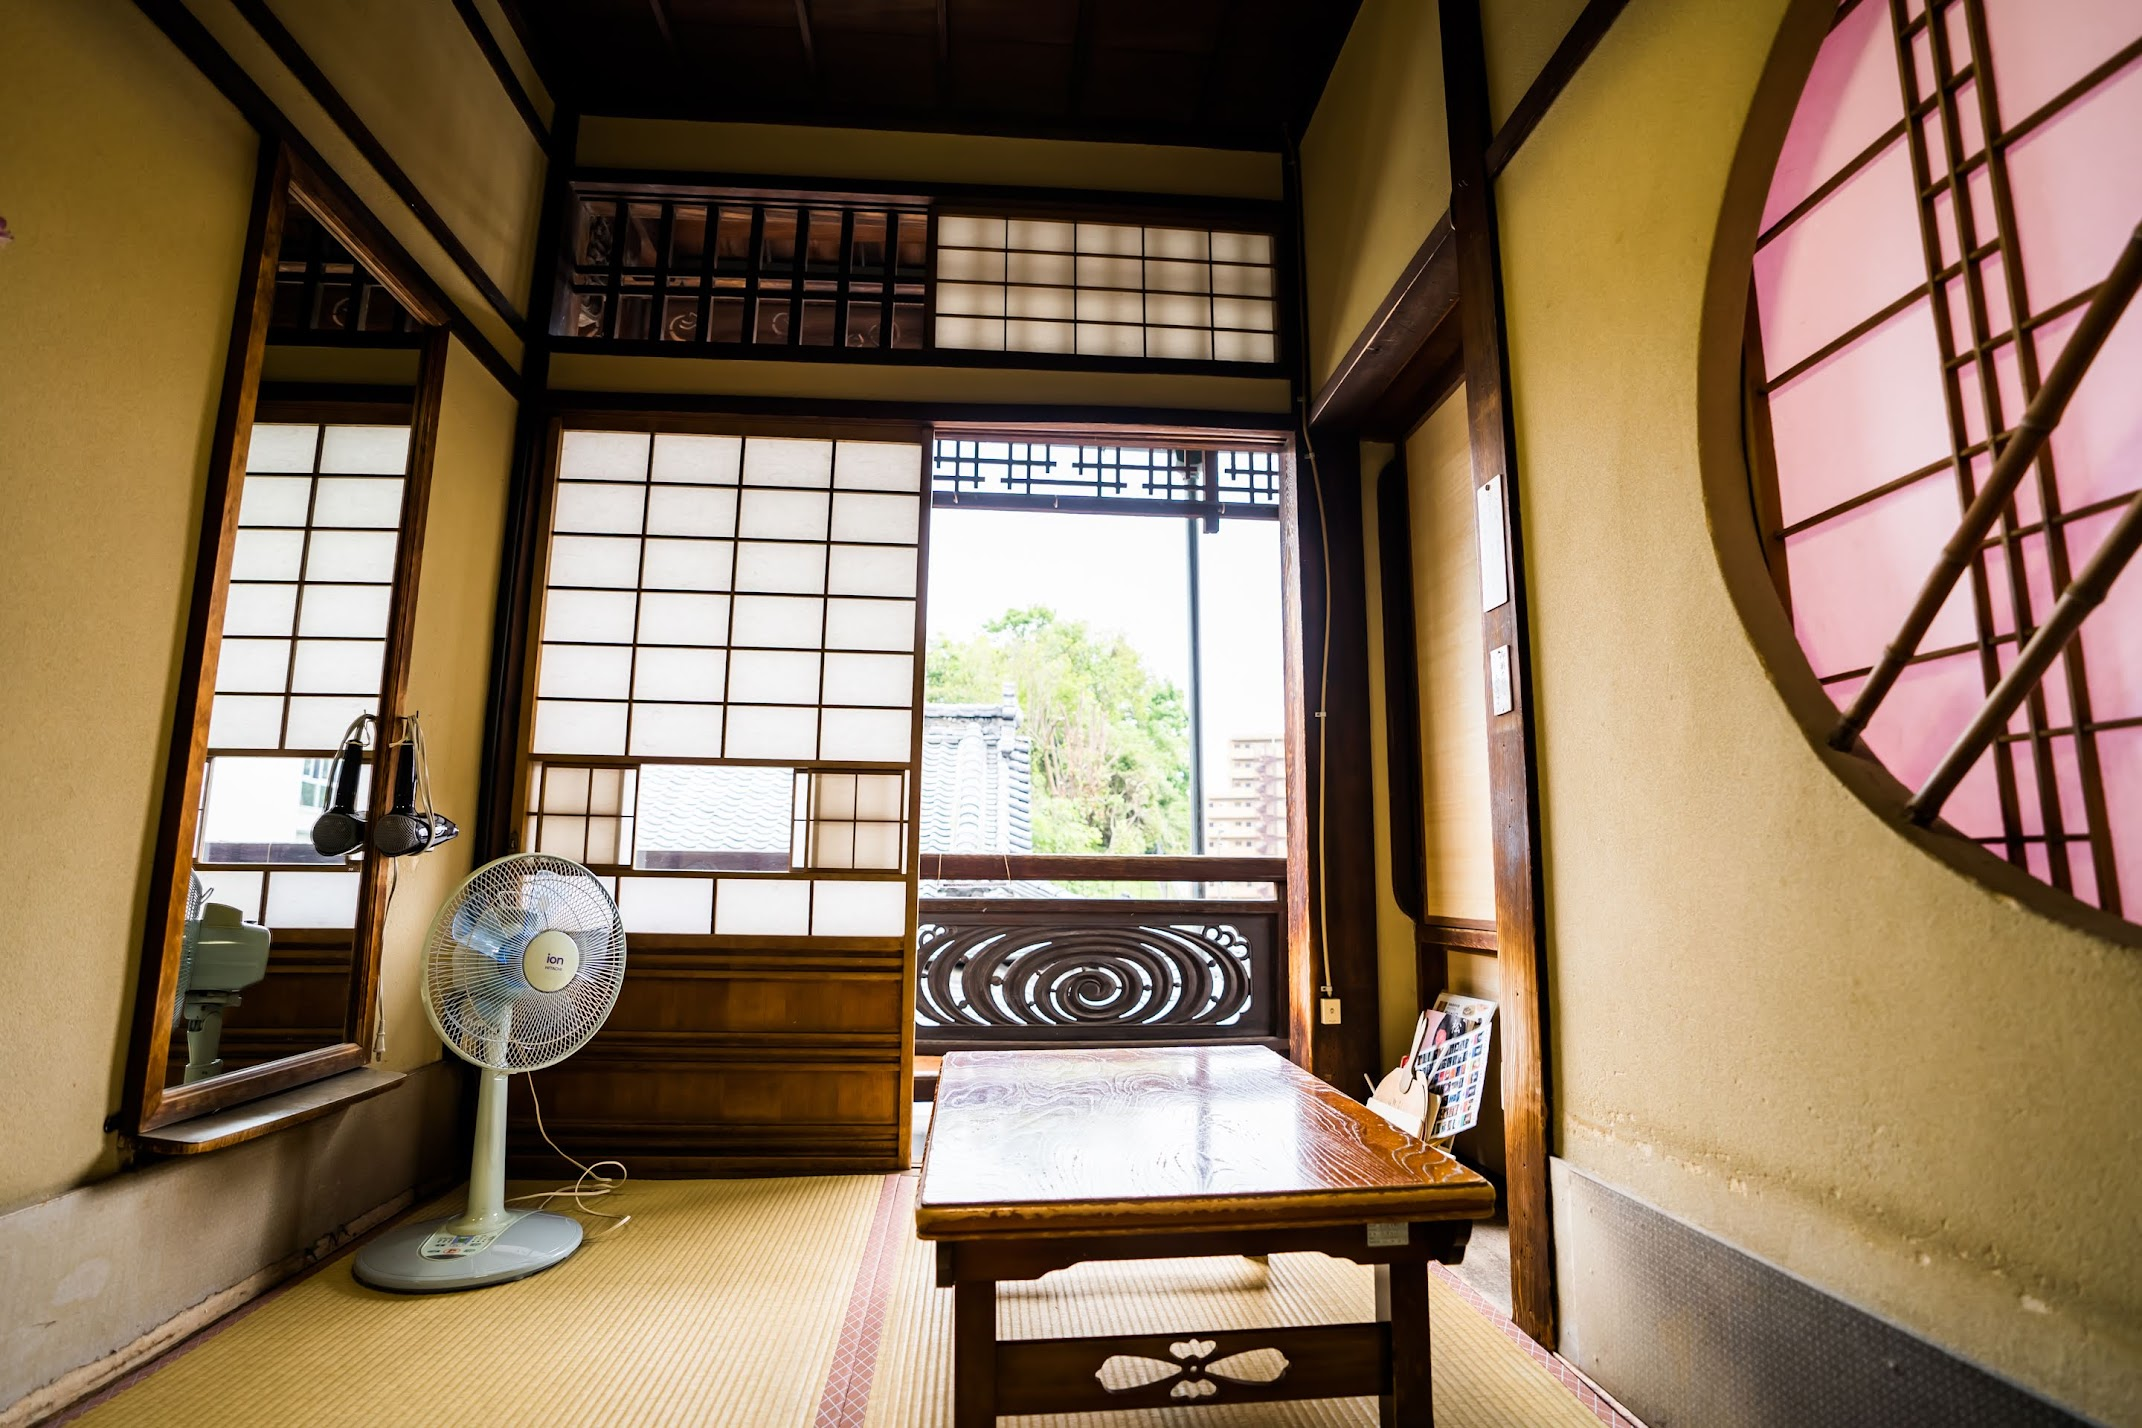 Dogo Onsen Honkan private room